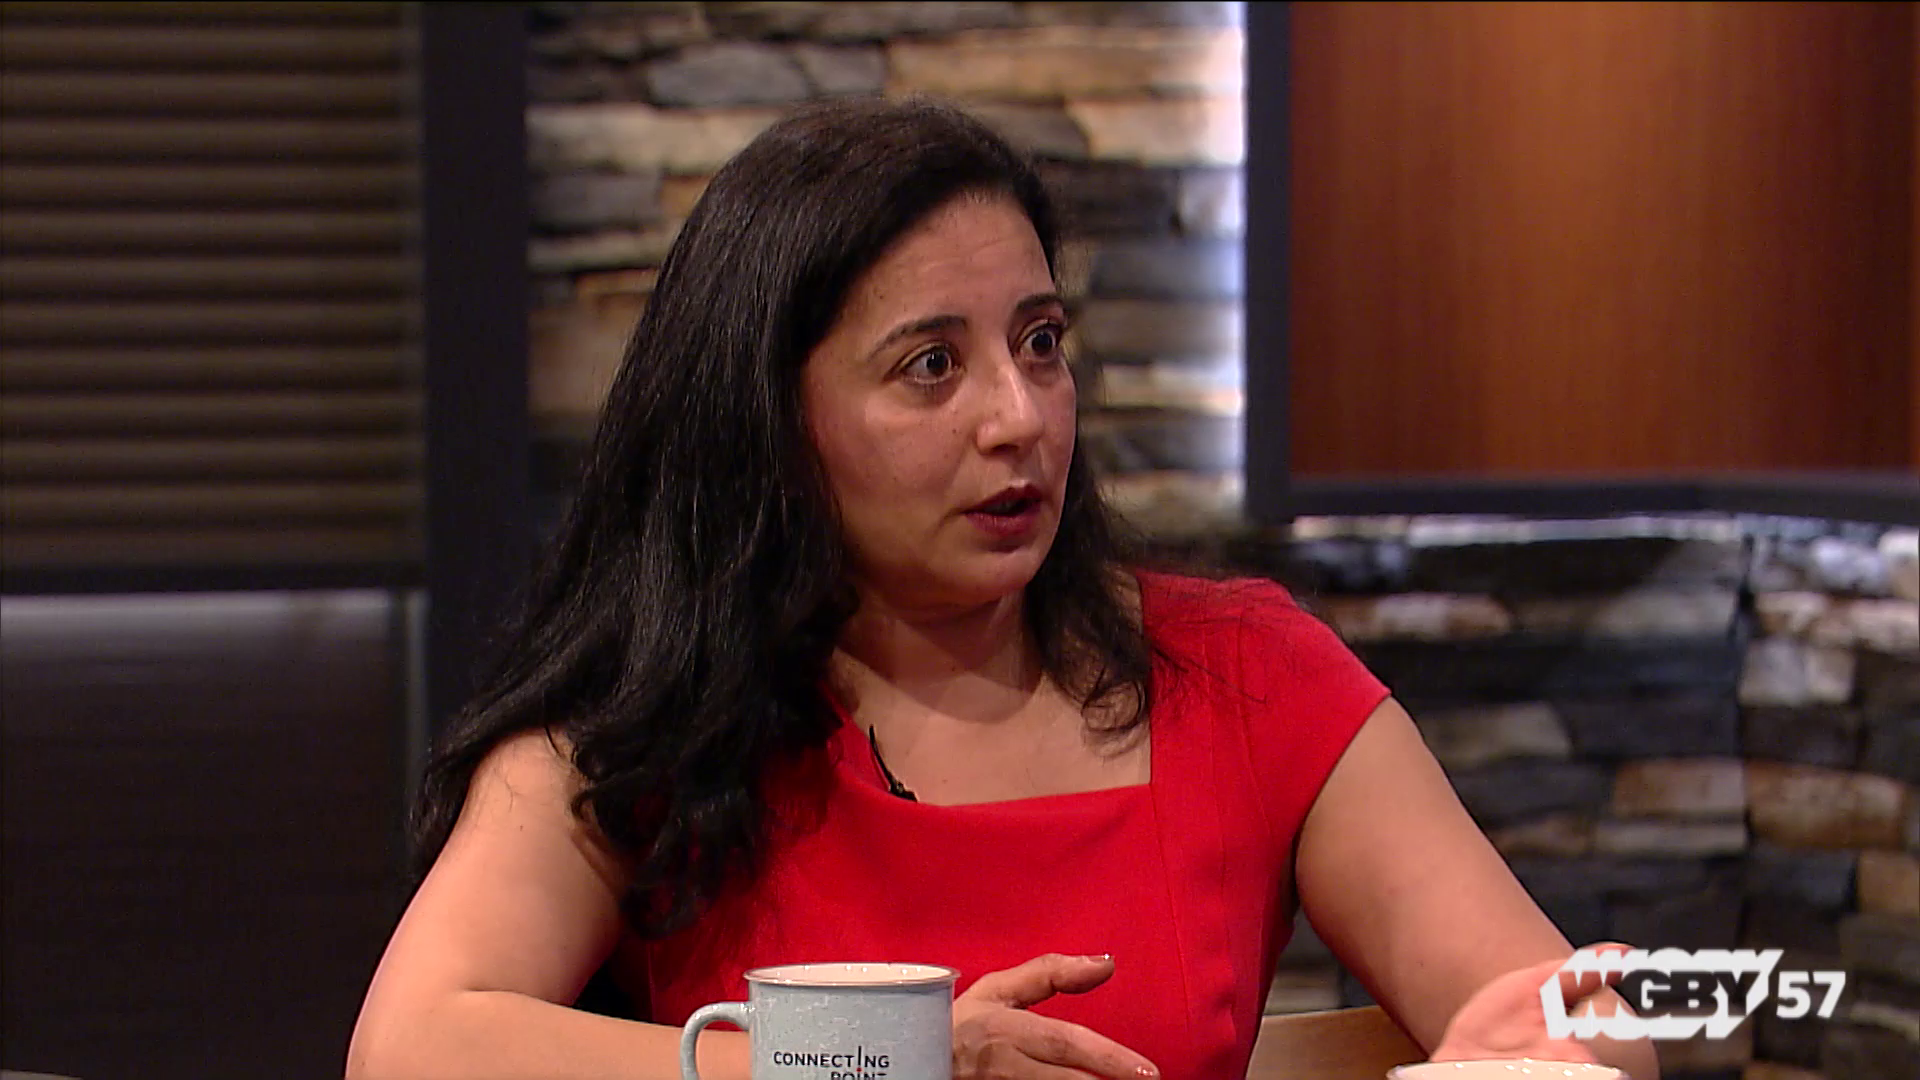 Baystate Medical Center Cardiologist Dr. Heba Wassif discusses an American Heart Association statement on the connection between breast cancer treatment and heart disease. A new report shows that certain breast cancer treatments may be associated with an increased risk of heart disease in some patients.